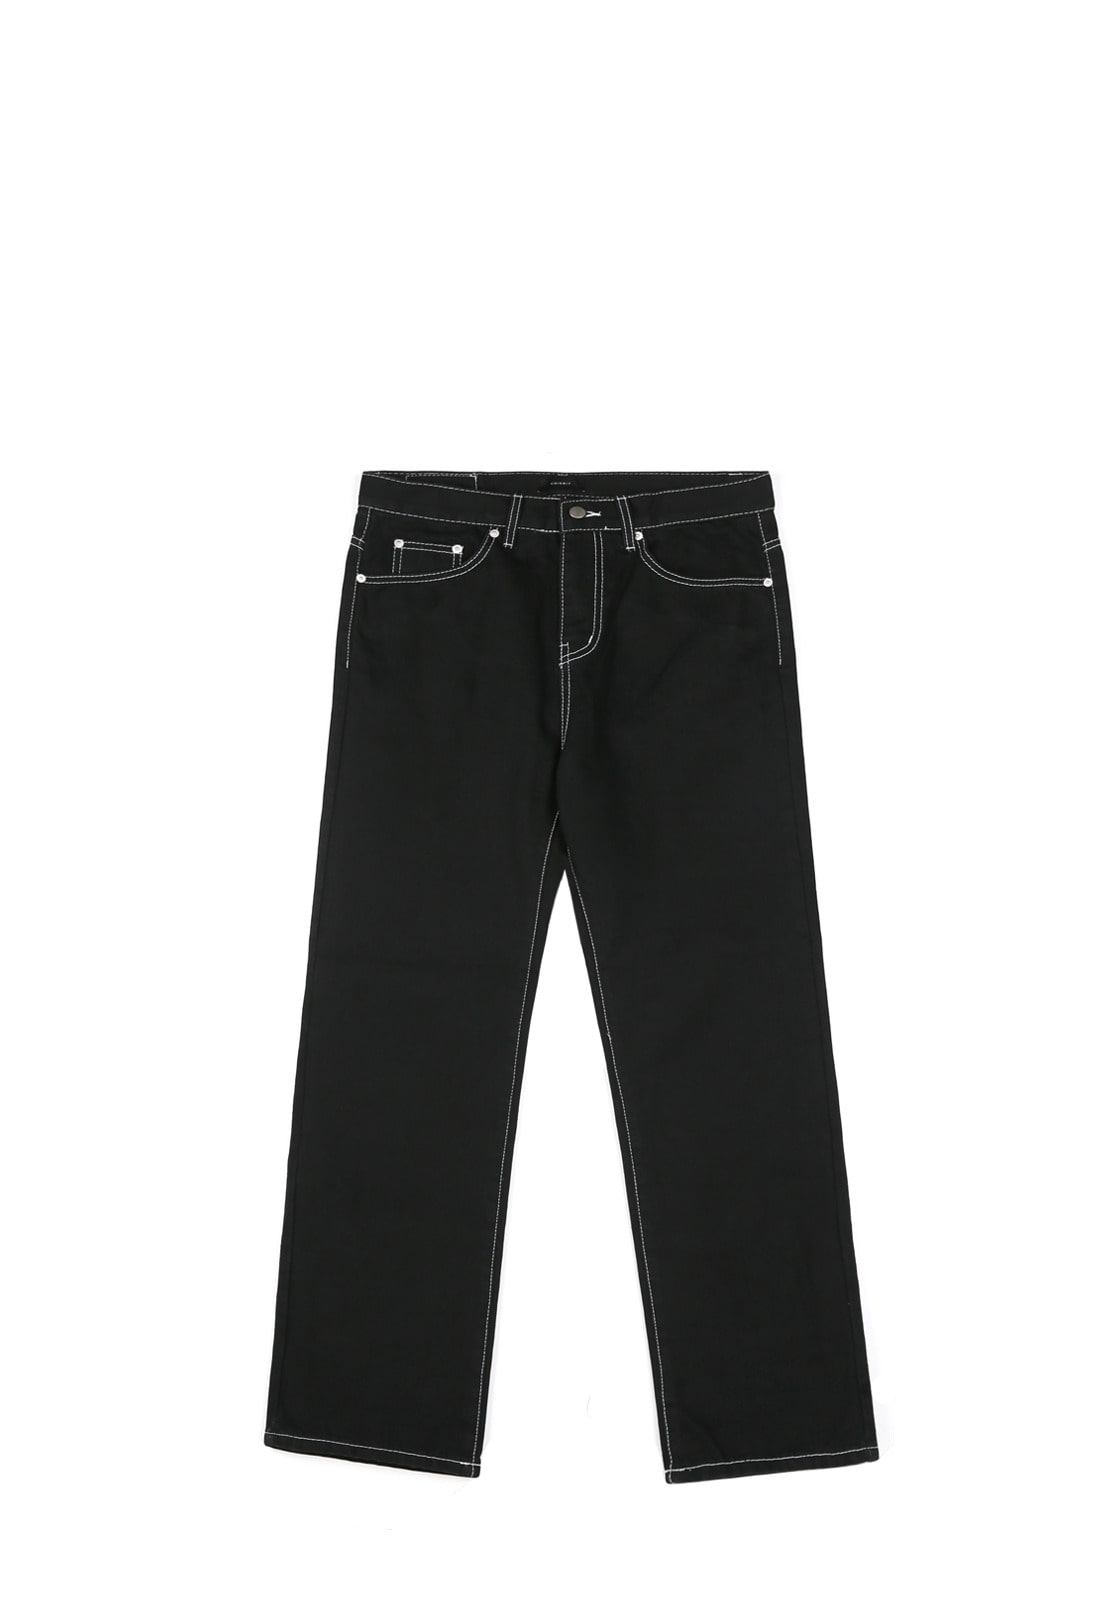 V253 STITCH BLACK WIDE DENIM PANTS  BLACK